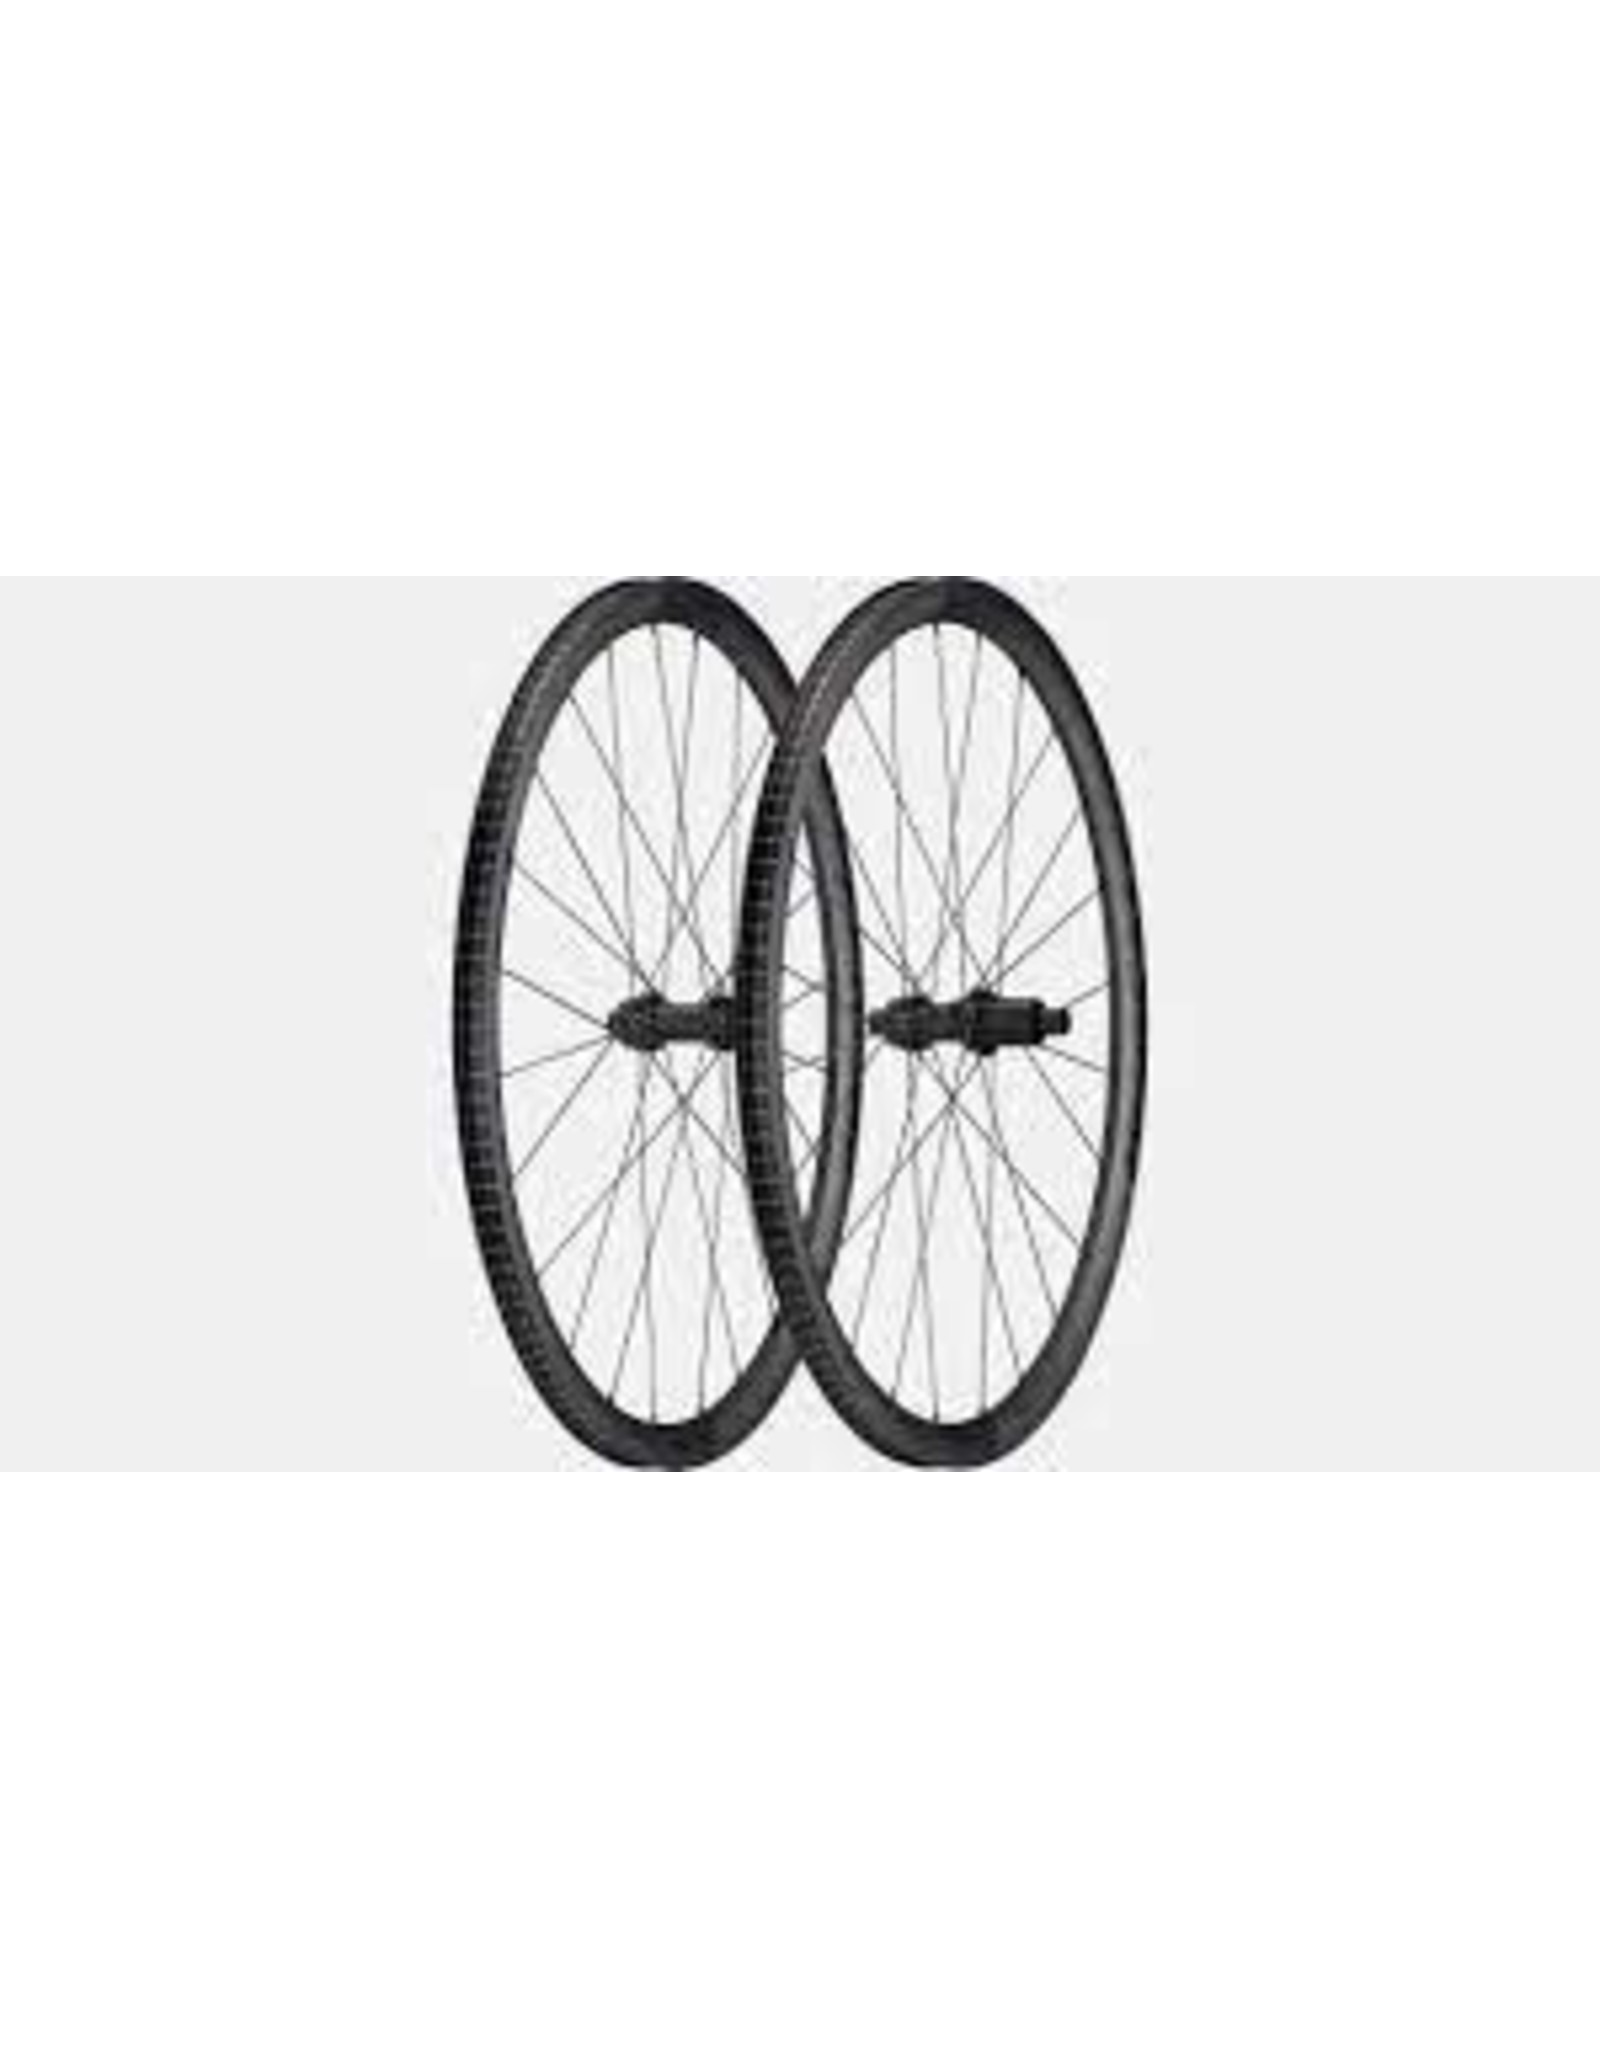 Specialized Wheel Roval Alpinist CL HG Carbon/Blk 700C